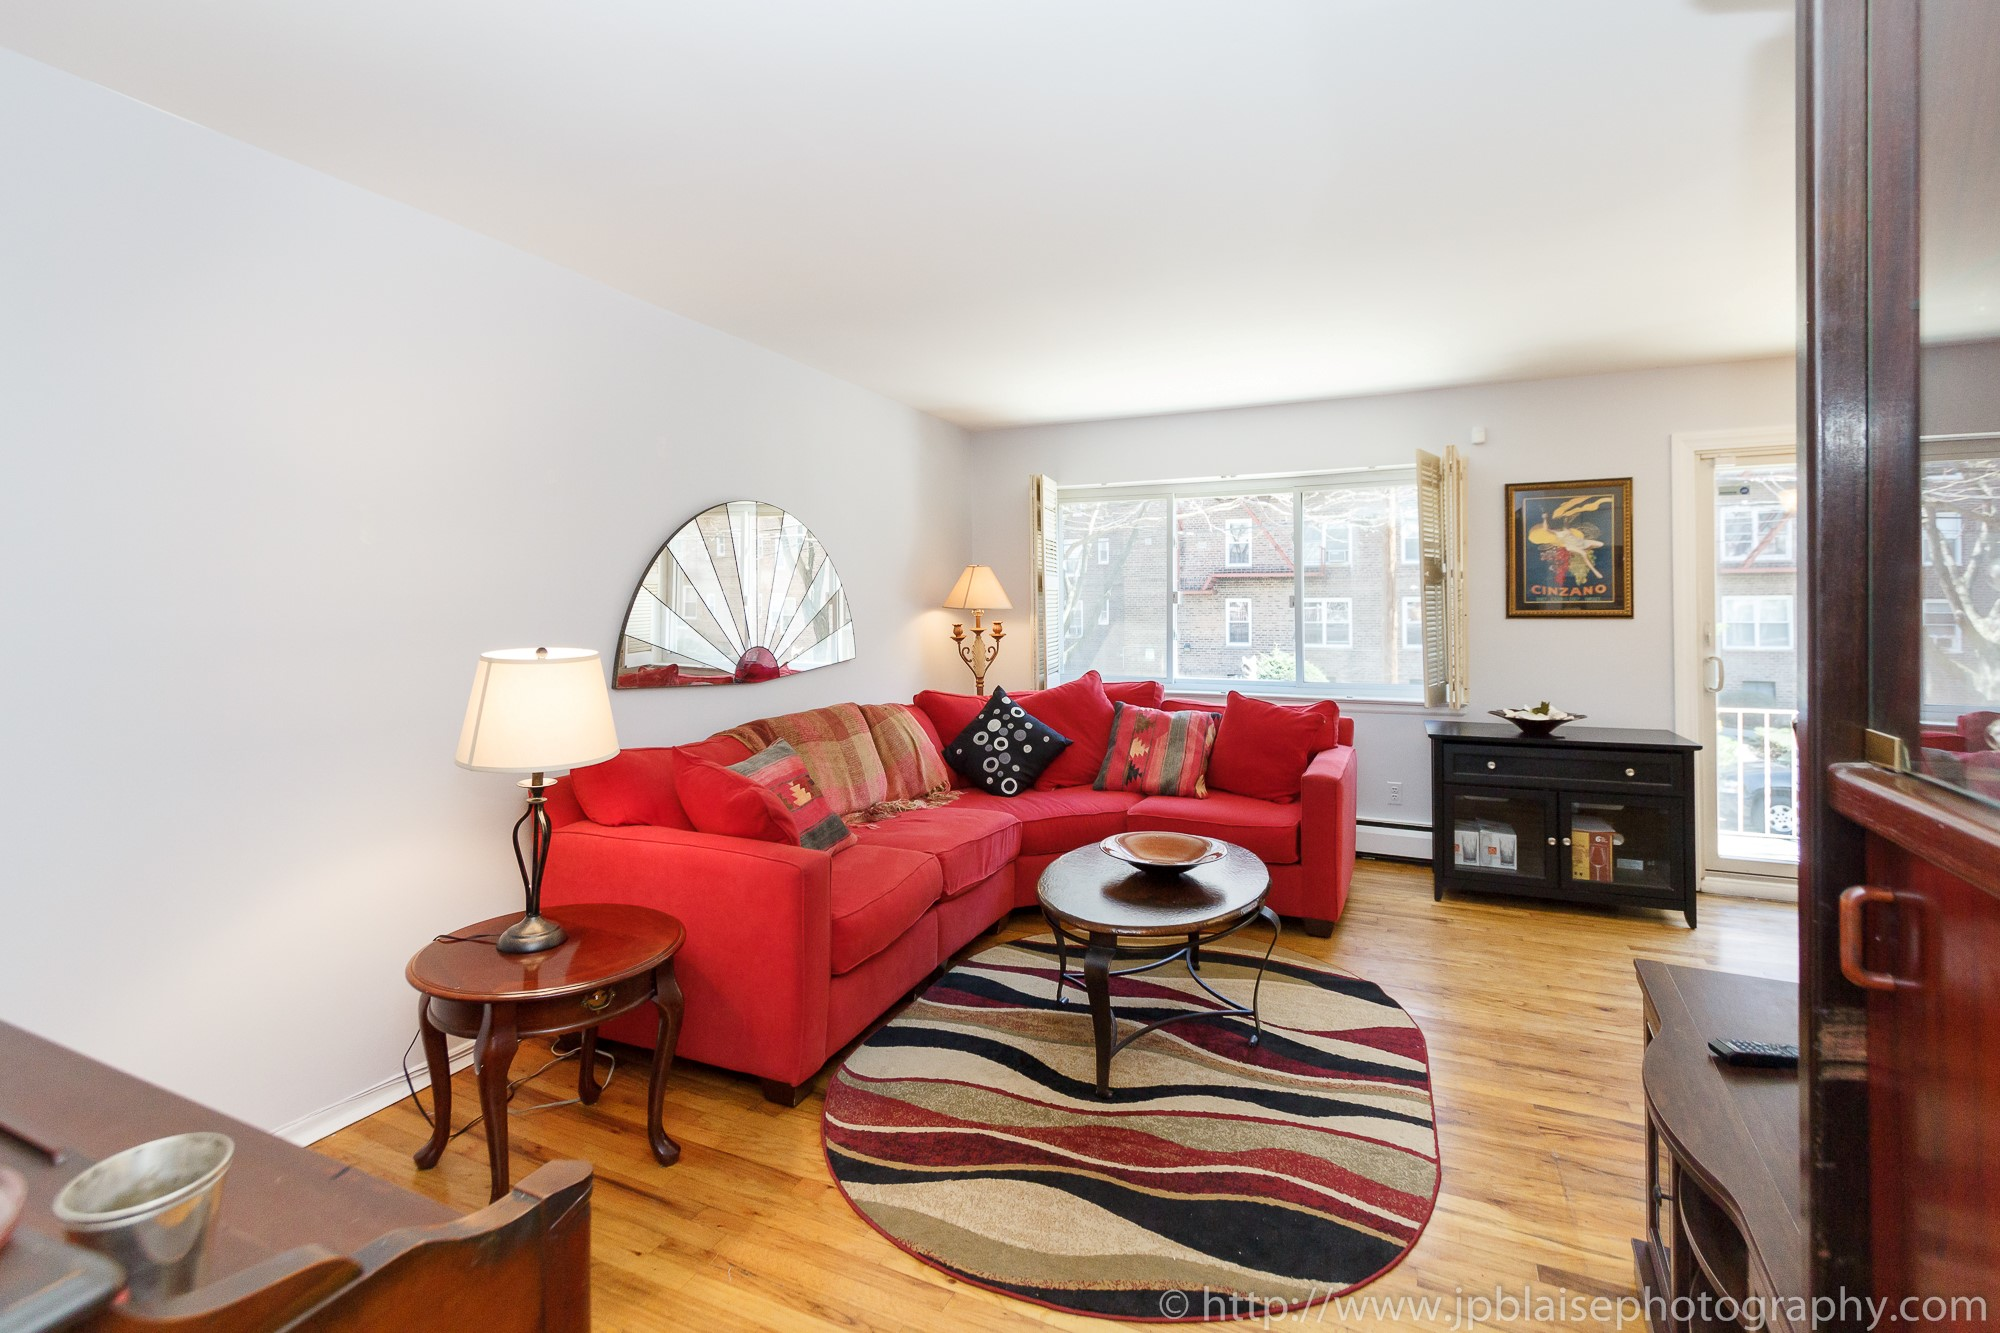 Interior Photographer photosession two bedoom apartment in sunnyside queens picture of living room